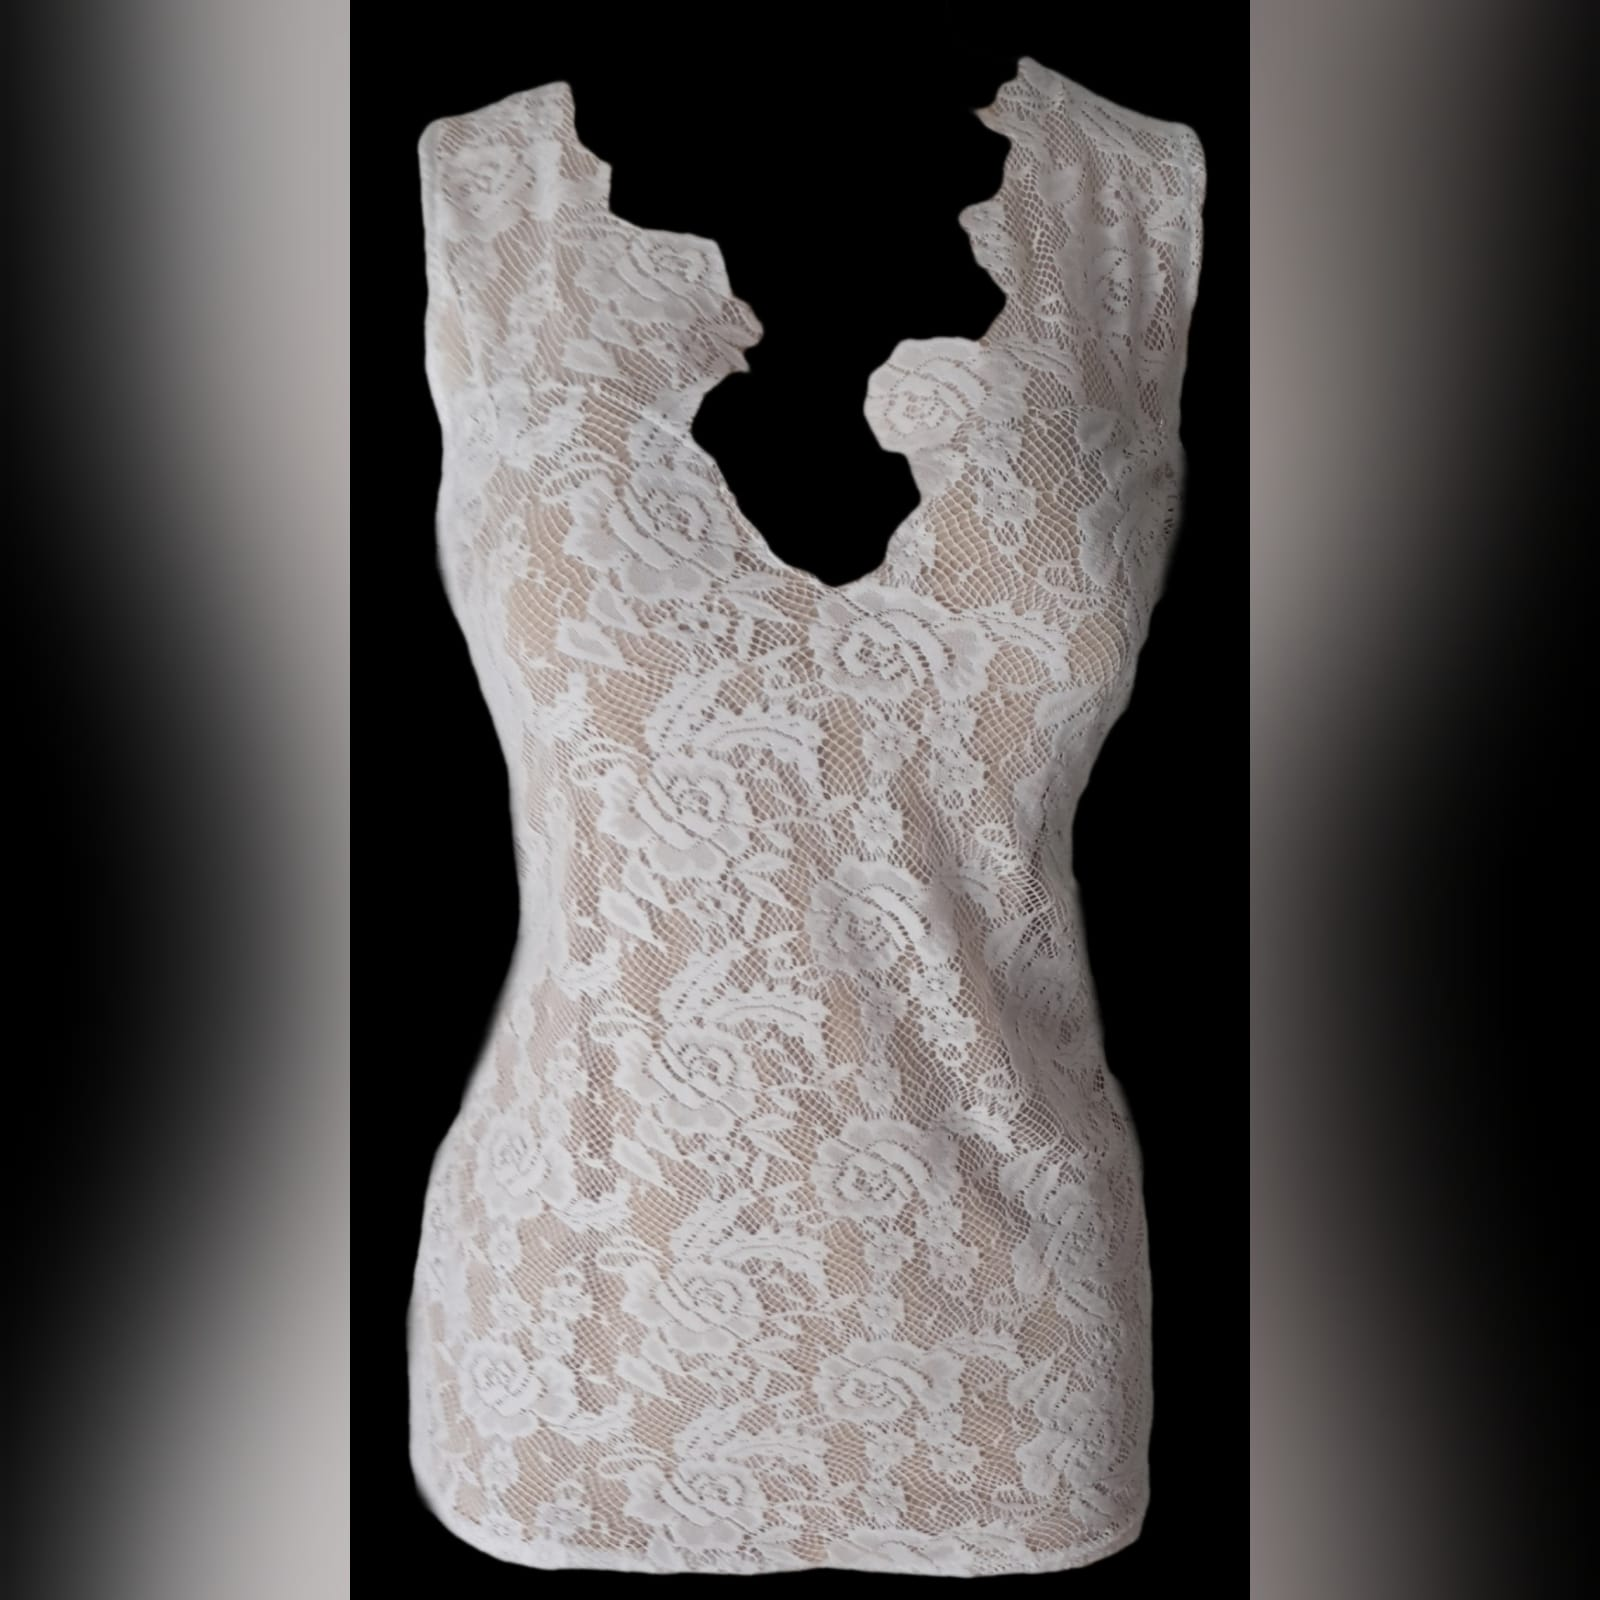 Peach and white 2 piece evening dress 2 peach and white 2 piece evening dress. Mini lace dress with a low open back, with a detachable back peach train